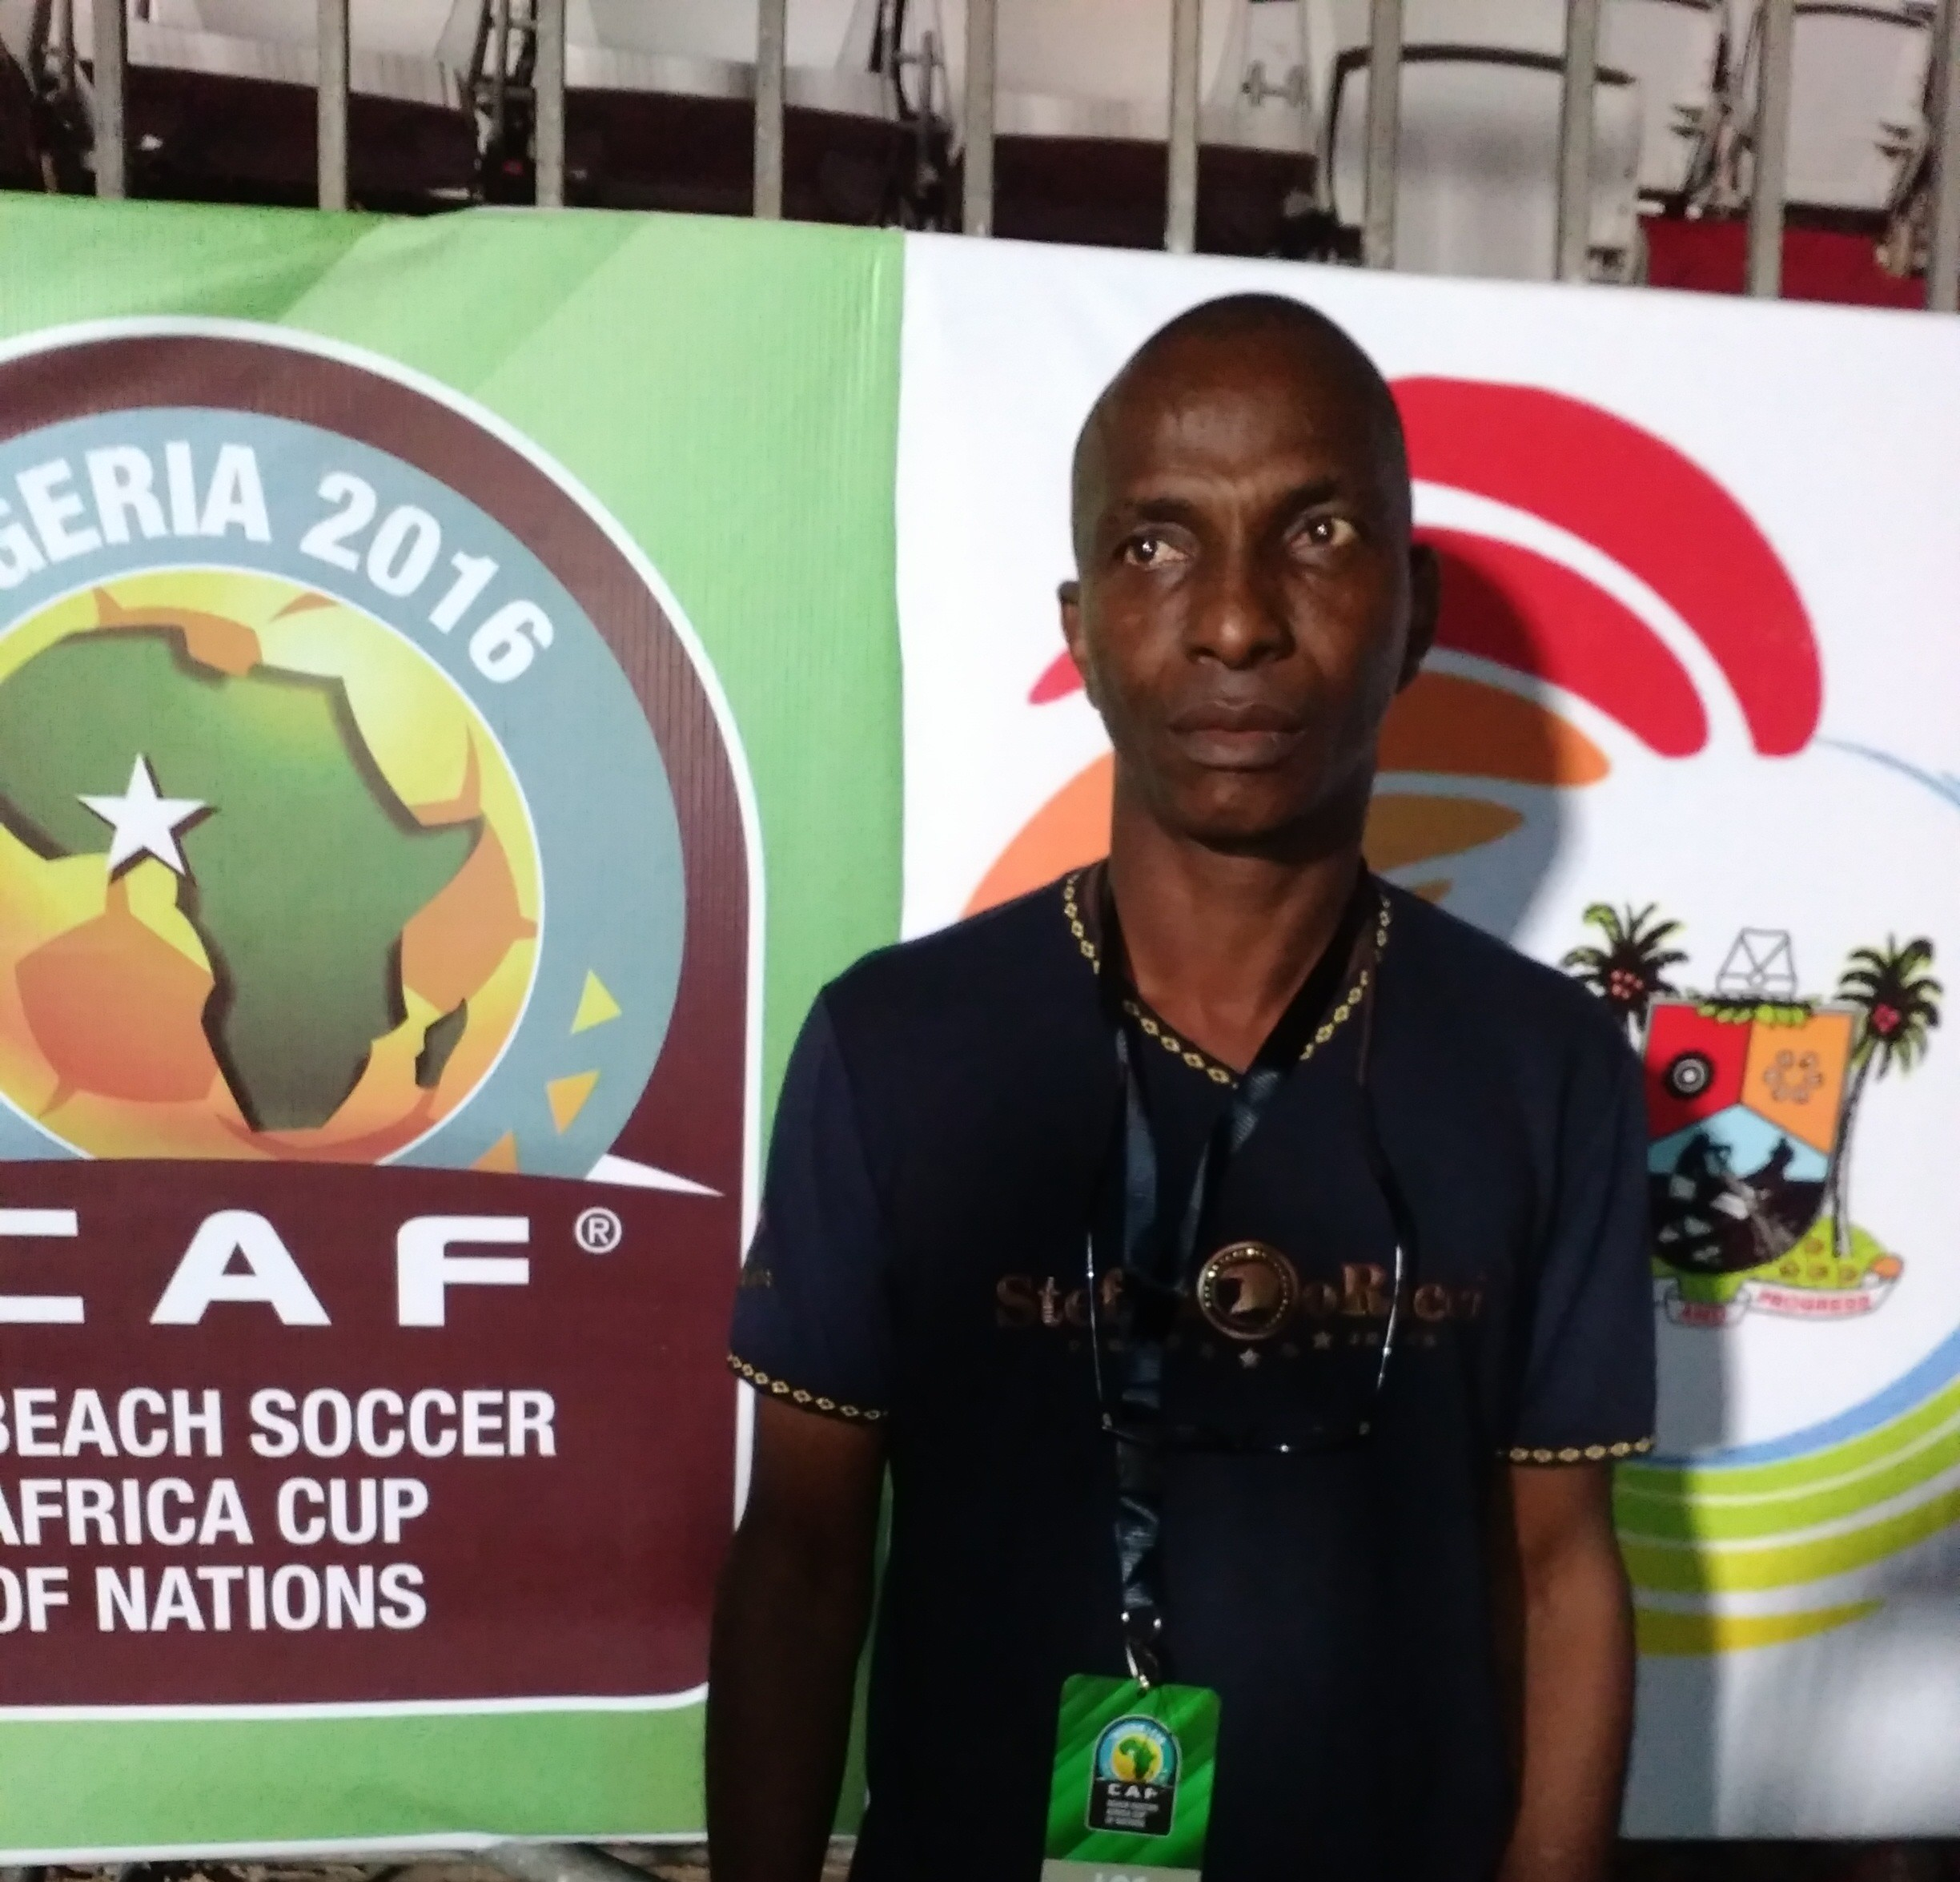 Nigeria qualifies for 2017 FIFA Beach Soccer World Cup in Bahamas